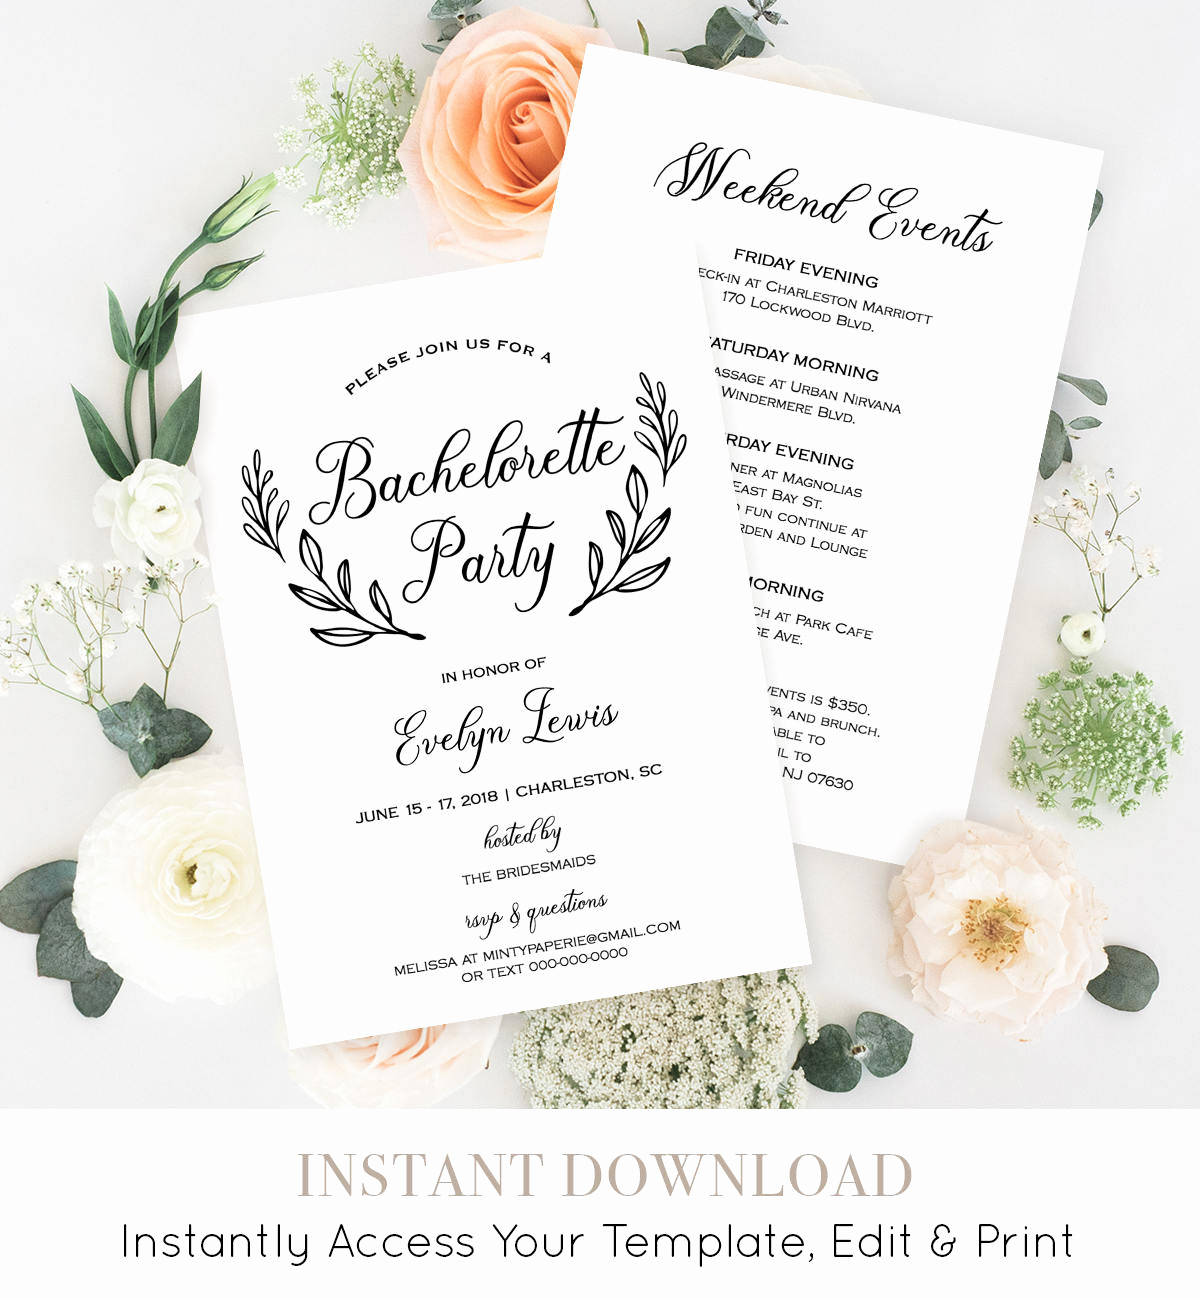 Bachelorette Party Itinerary Template Best Of Bachelorette Party Invitation Template Printable